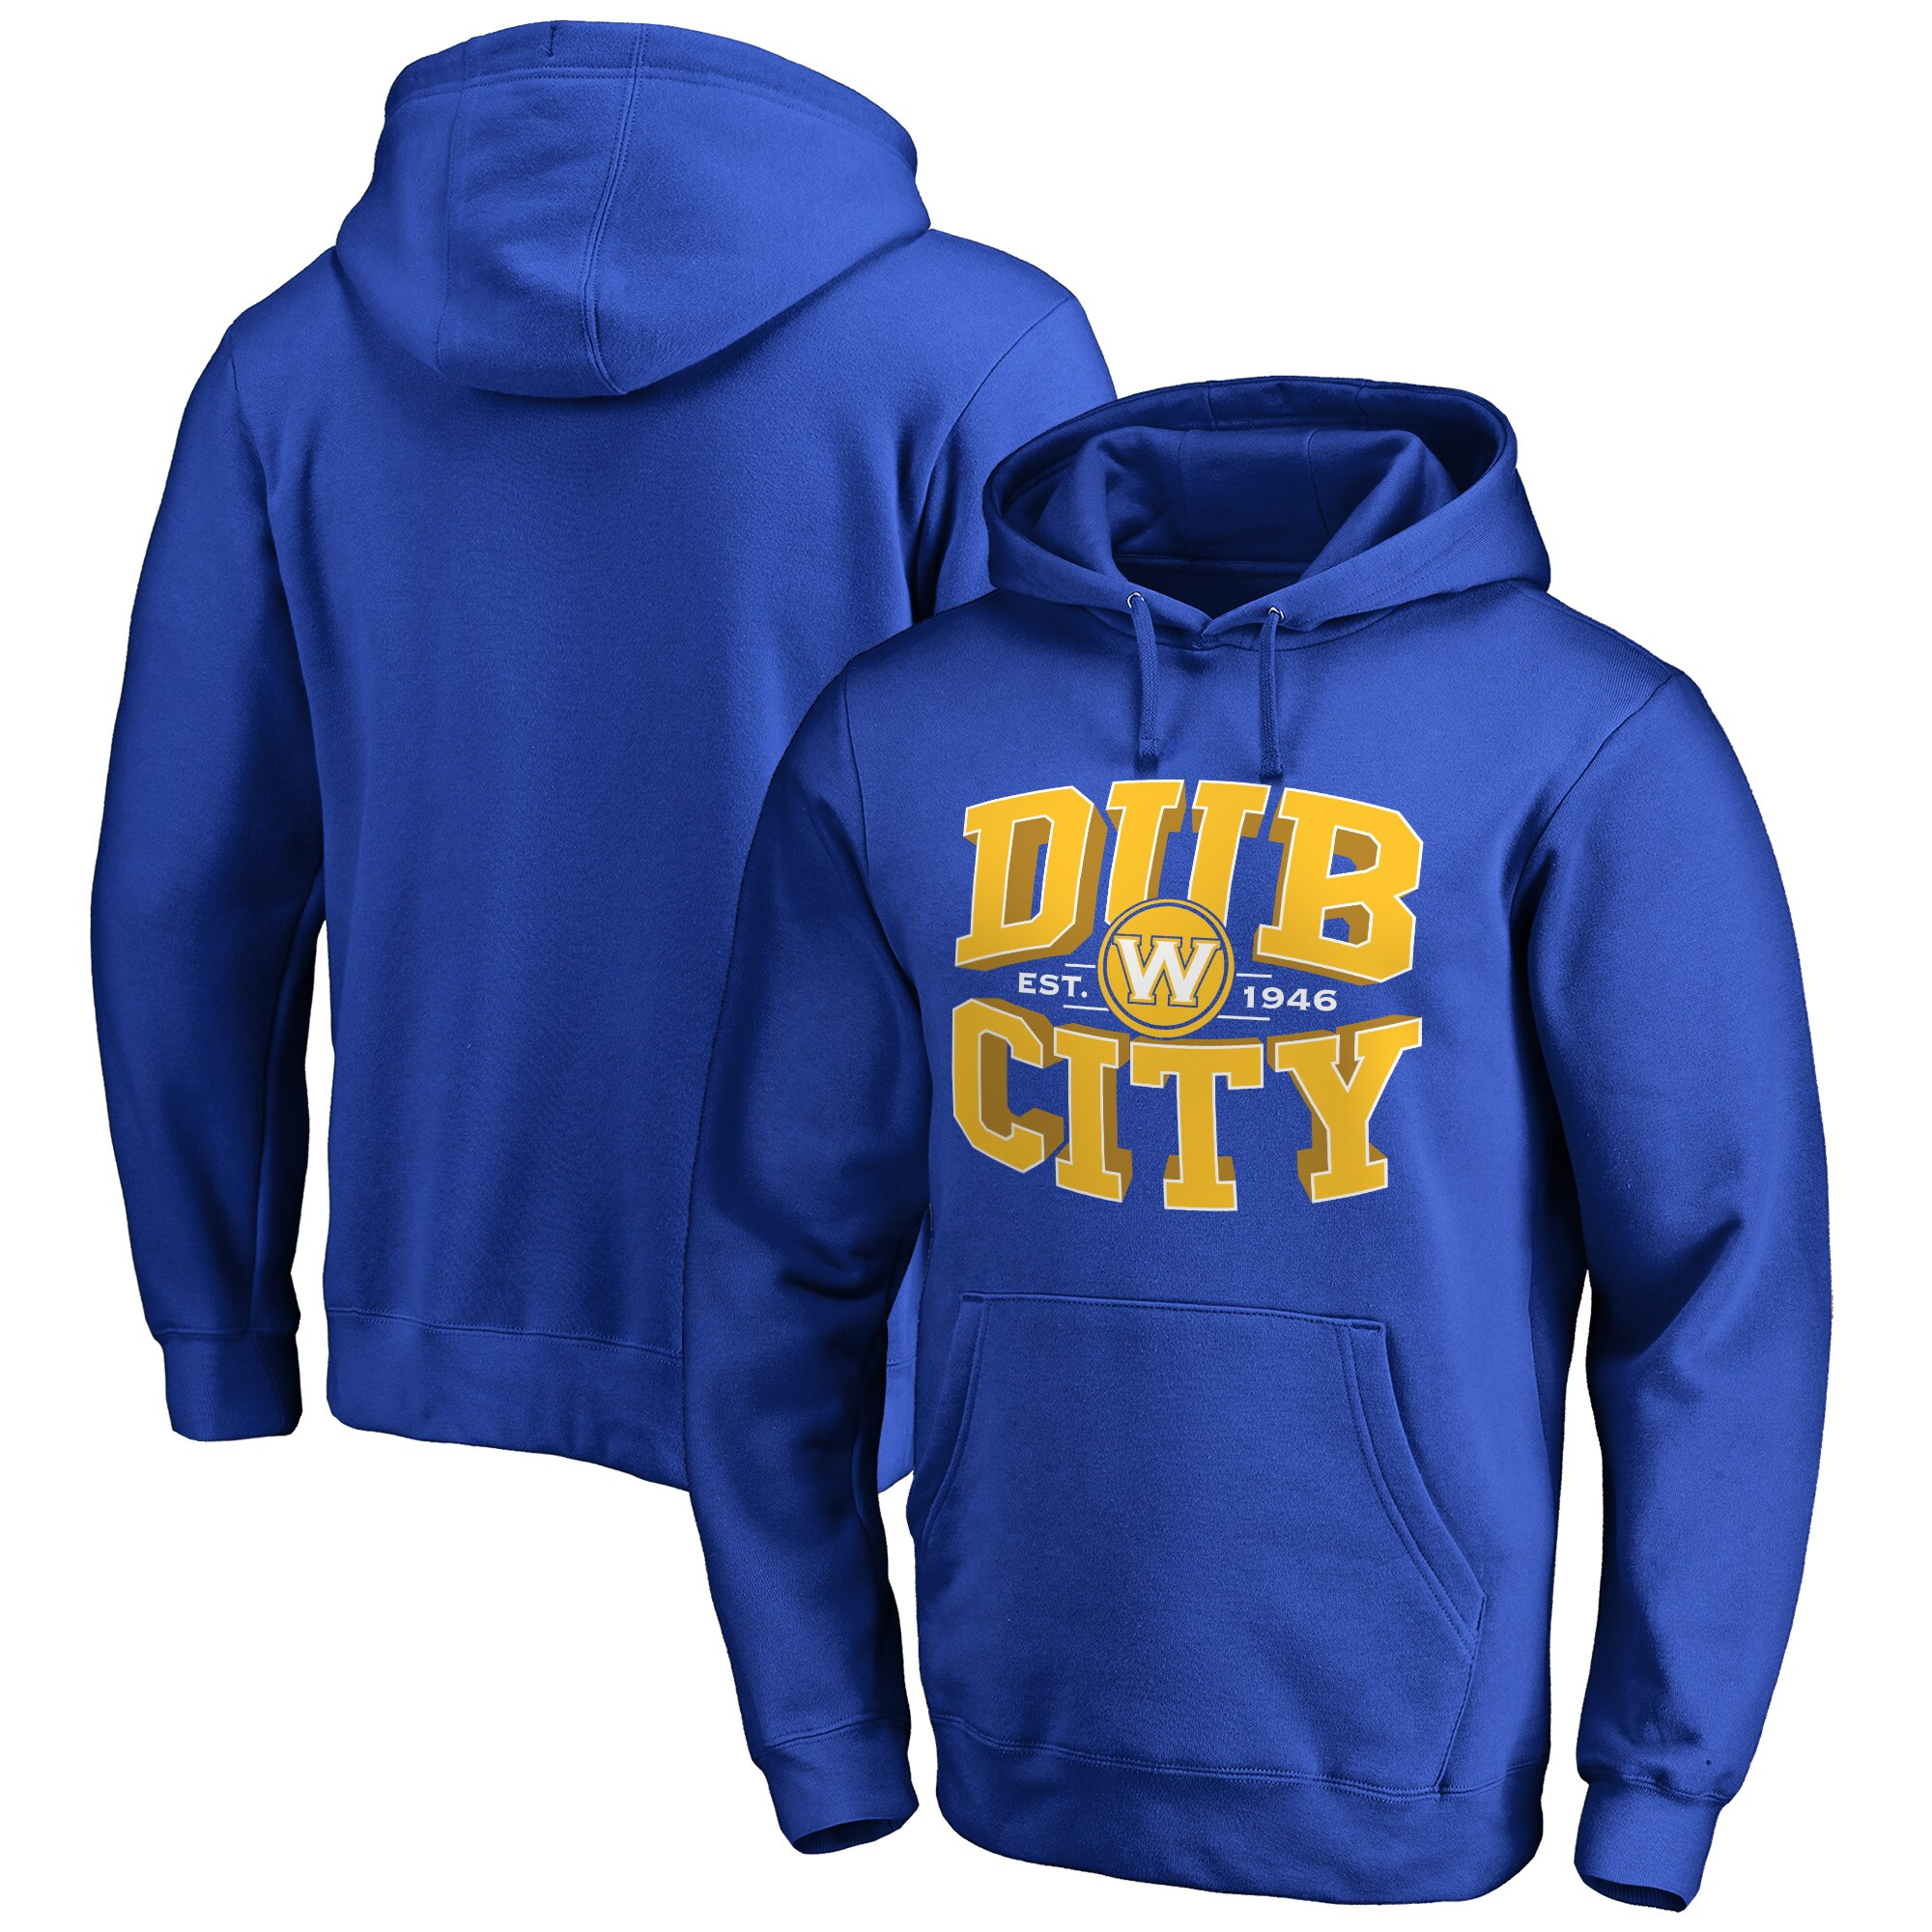 Golden State Warriors Fanatics Branded Dub City Hometown Collection Pullover Hoodie - Royal